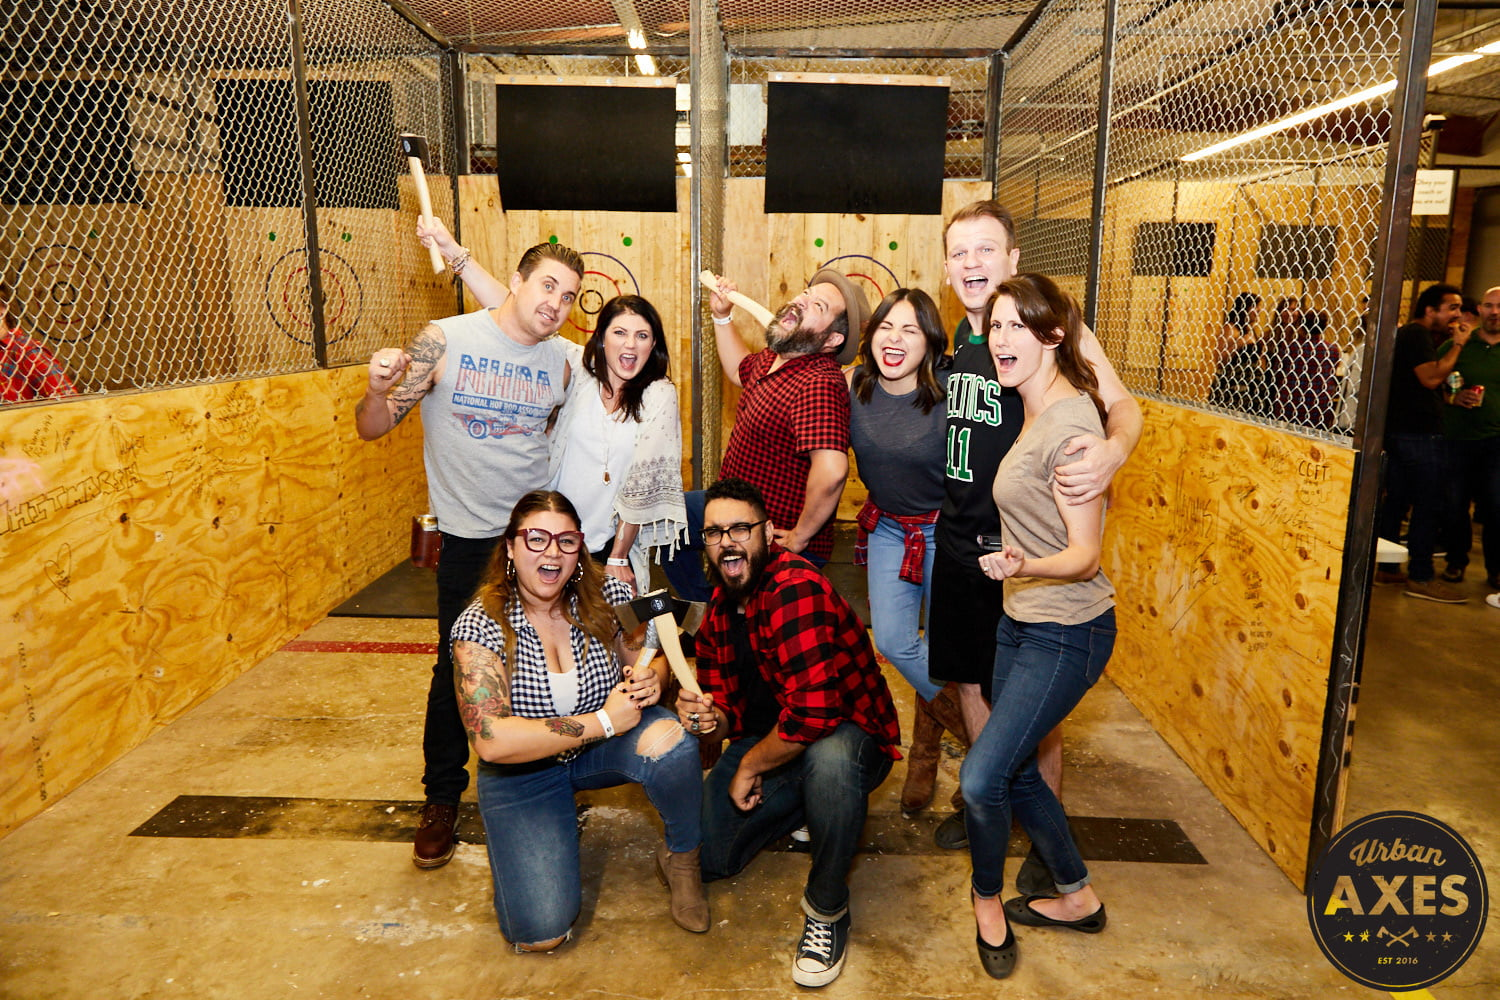 The Year of Axe Throwing: Urban Axes Expands National Footprint, Fueling Significant Growth for 2020